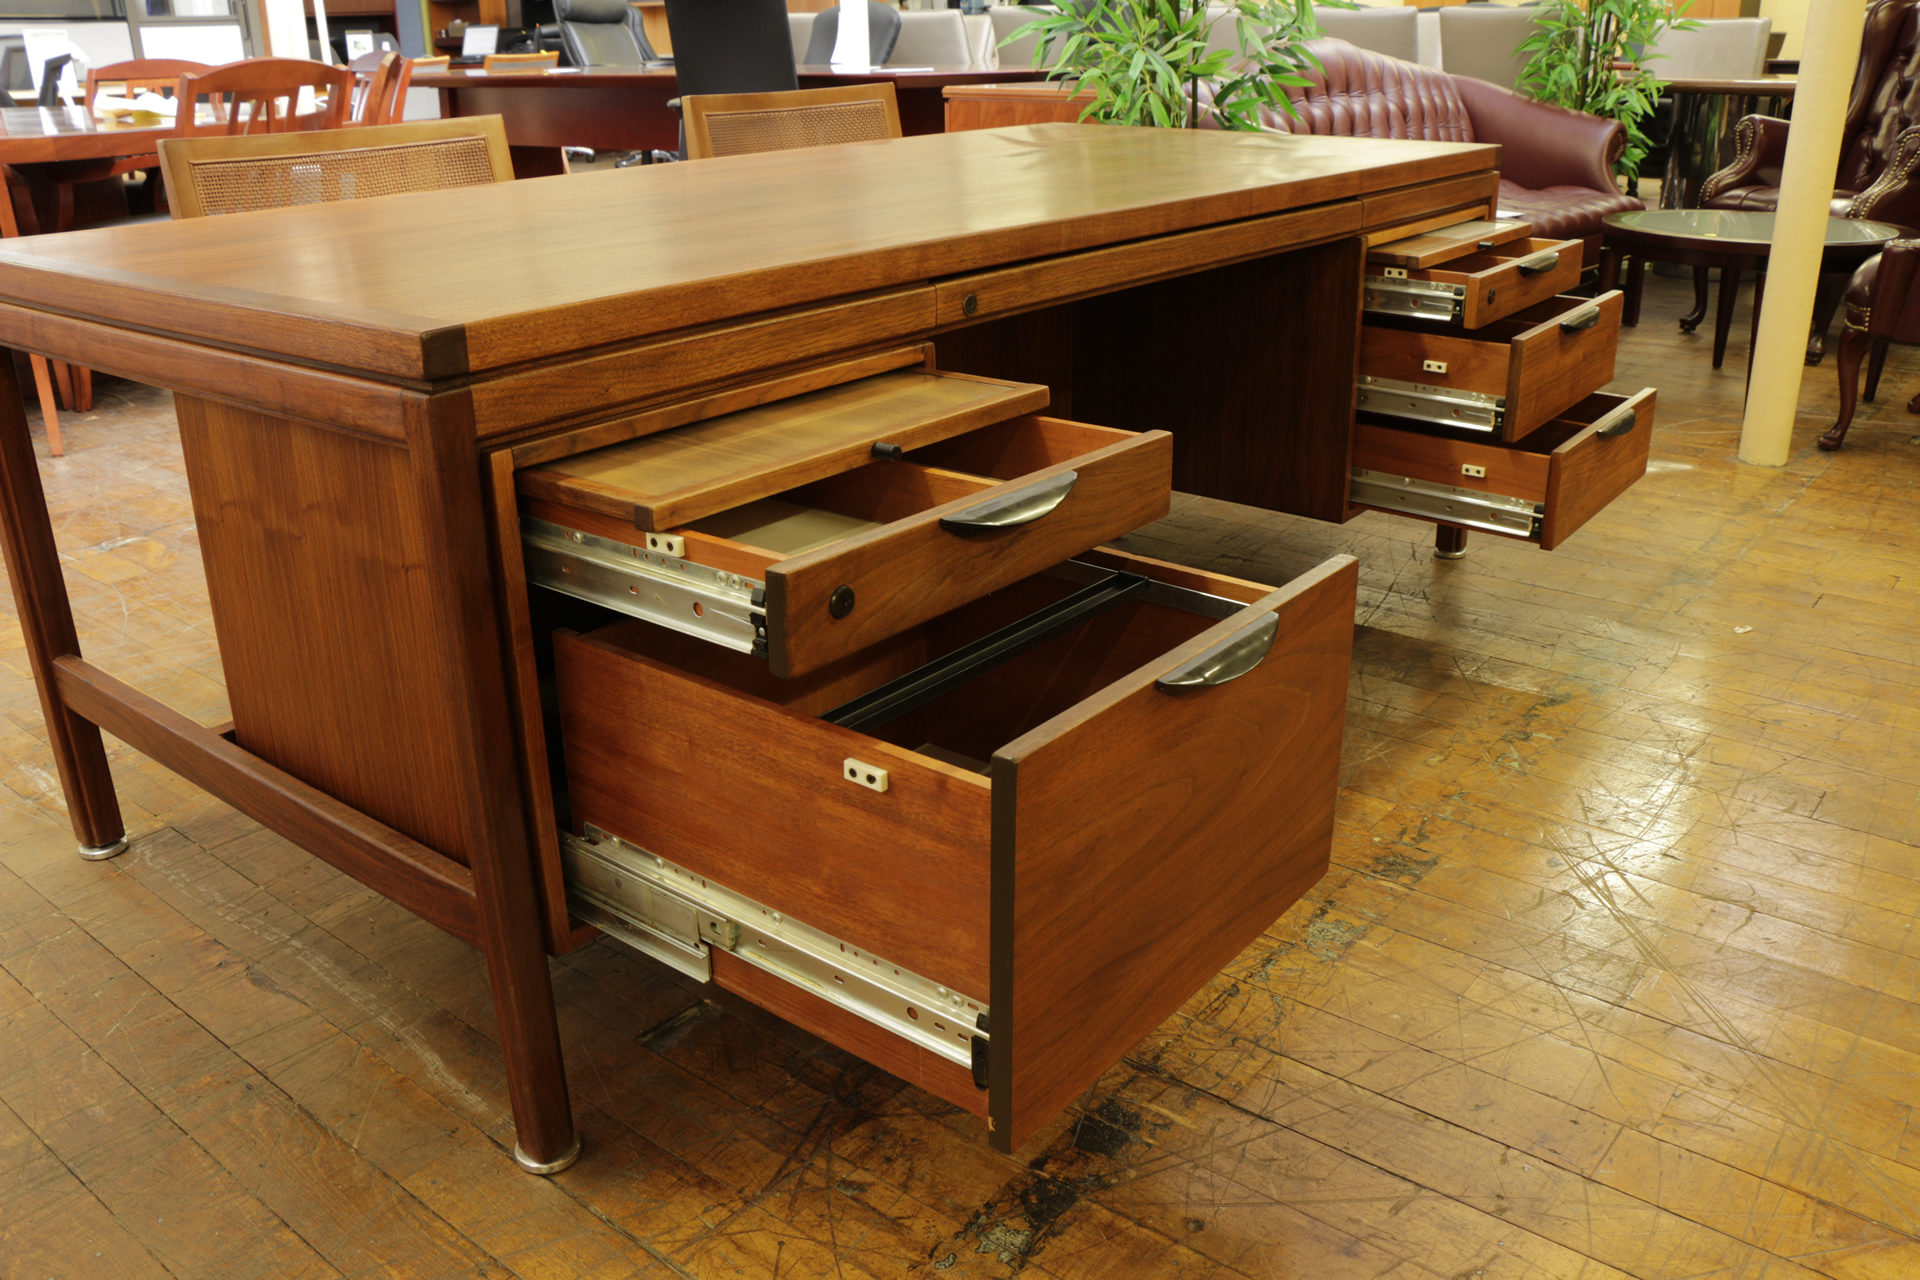 peartreeofficefurniture_peartreeofficefurniture_mg_1971.jpg